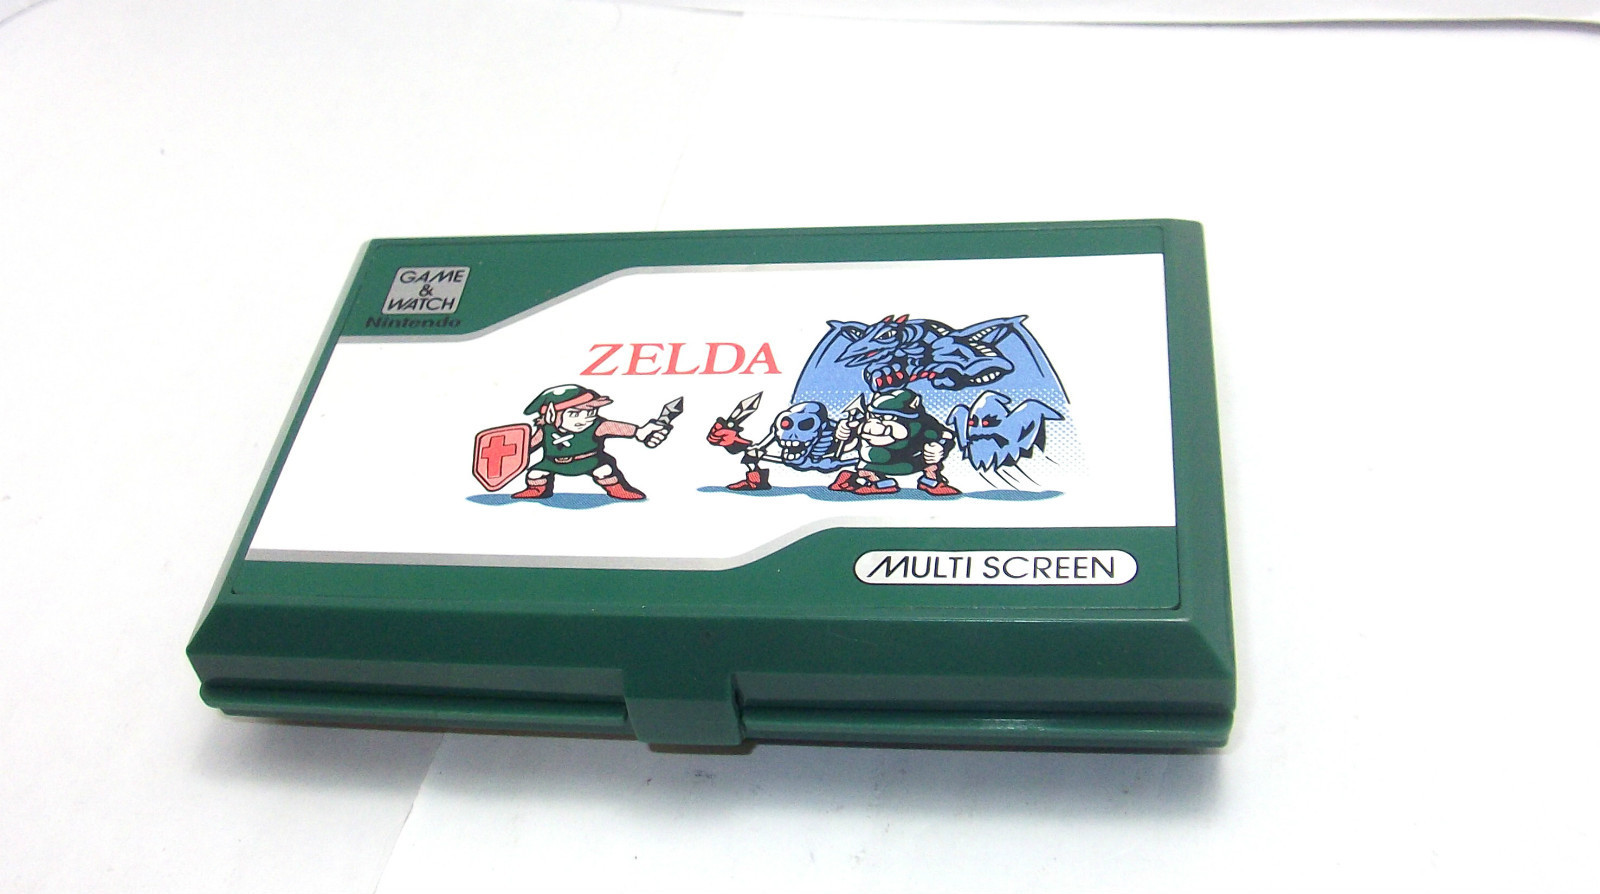 Console de Zelda Game and Watch